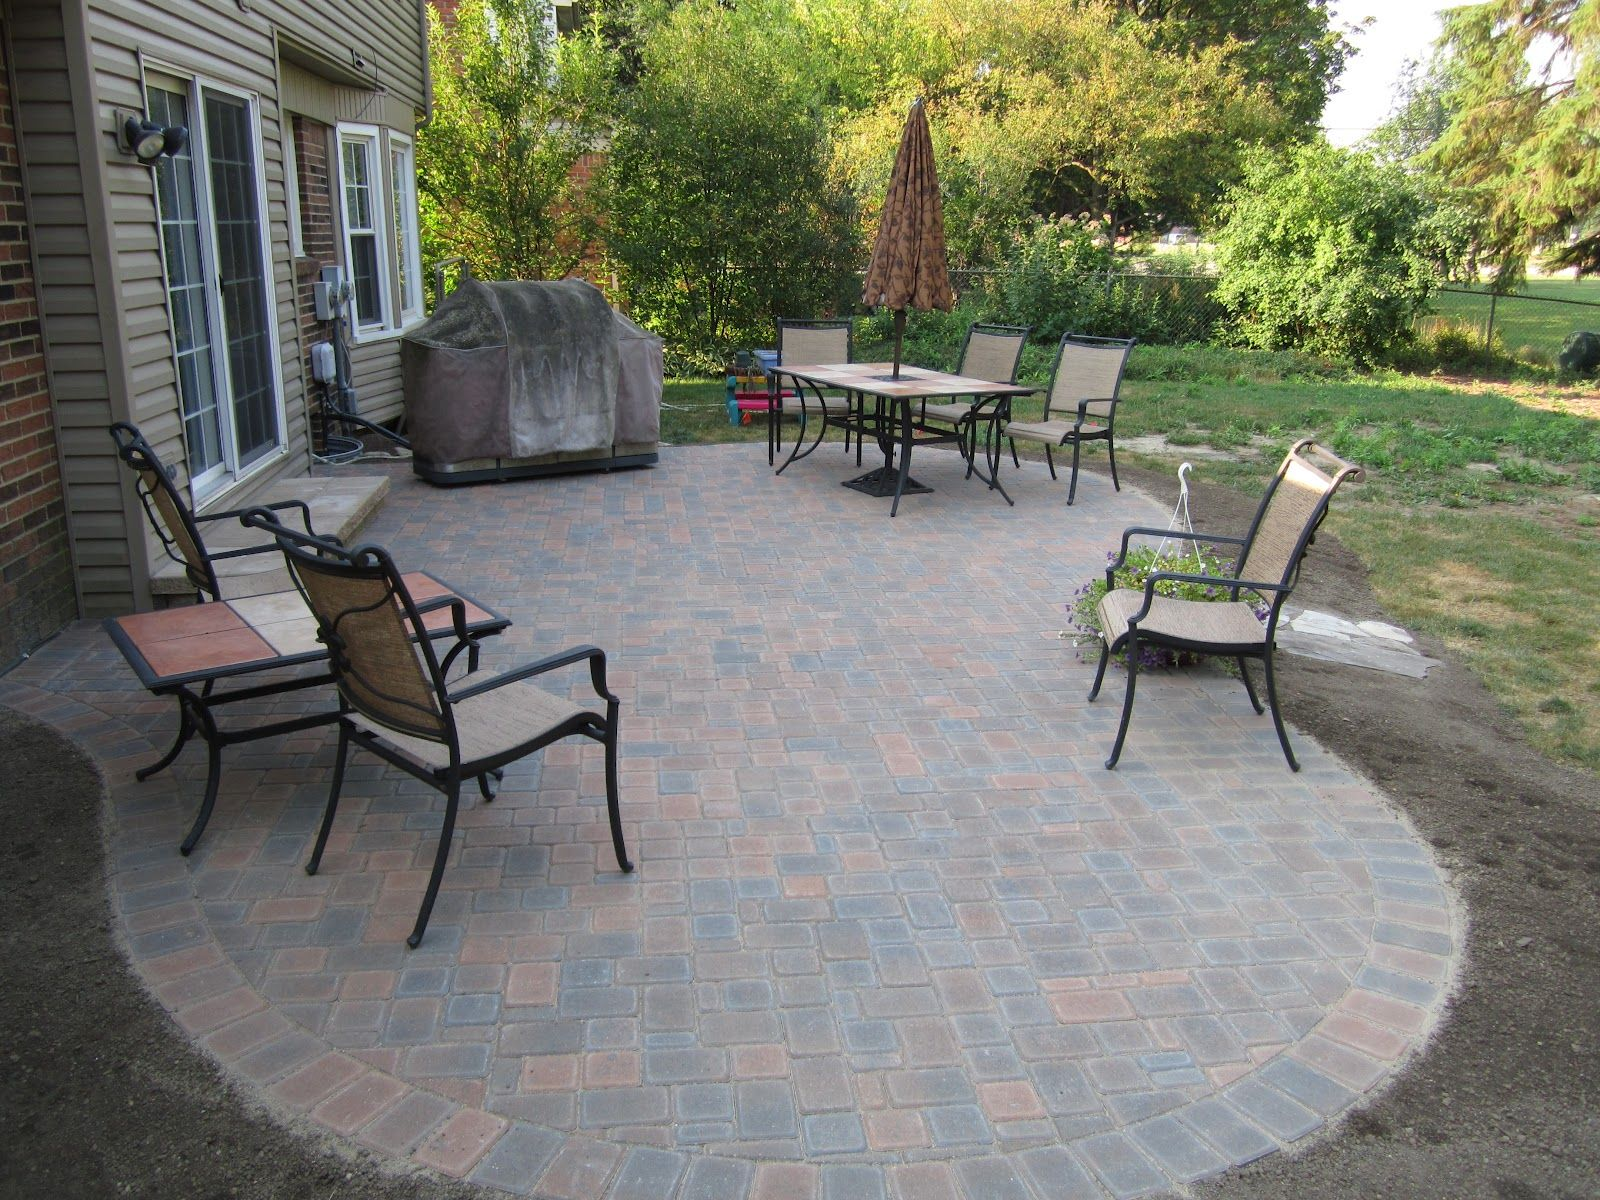 Stone Patio Design Ideas paver patio ideas will beautify your yard patio paver designs ideas paver patio ideas will beautify your yard patio paver designs ideas Small Paver Patio Designs Landscaping With Pavers Reputable Stone Installation As Wells Comely Paving Stones For